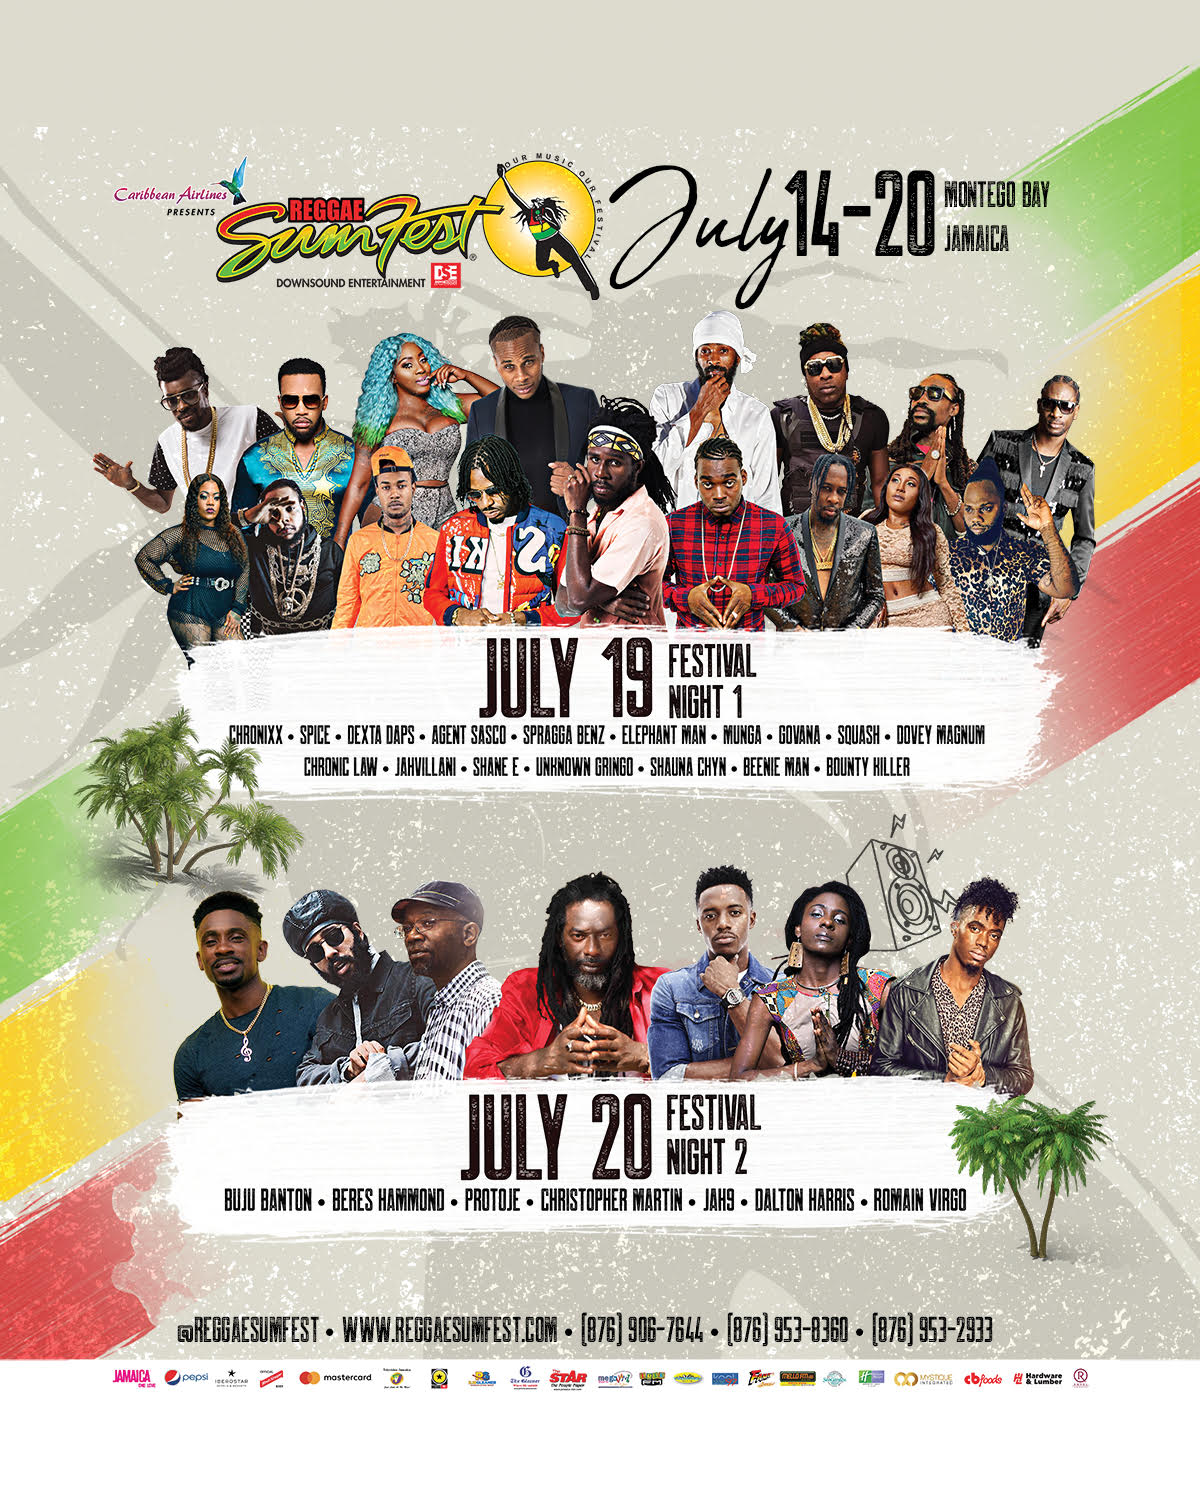 Sumfest 2K19 Schedule of Events!!!